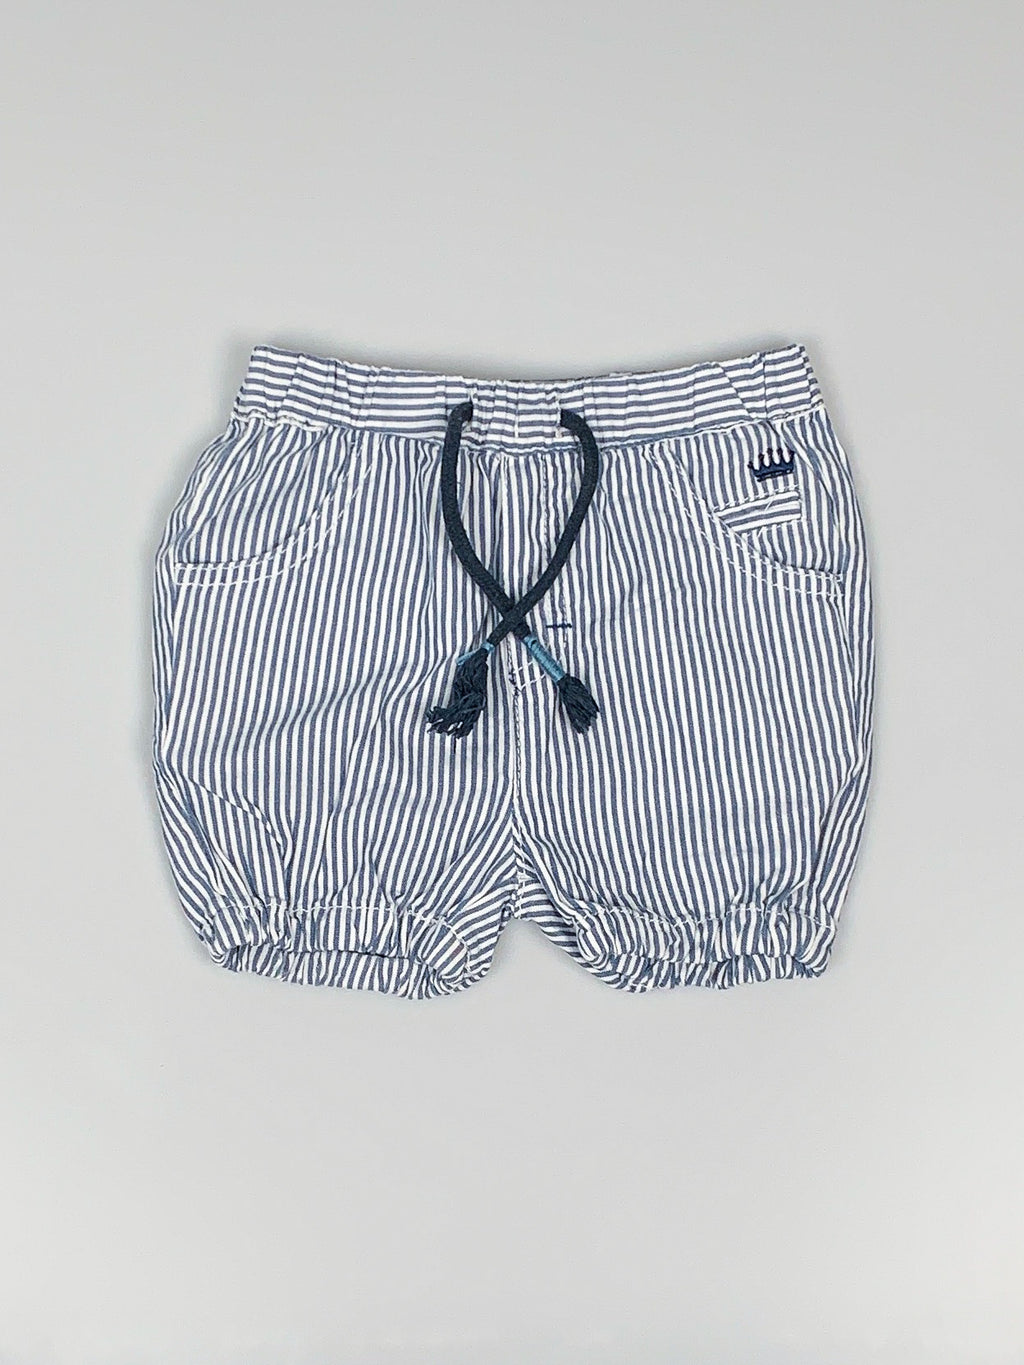 Stribede shorts m. snøre